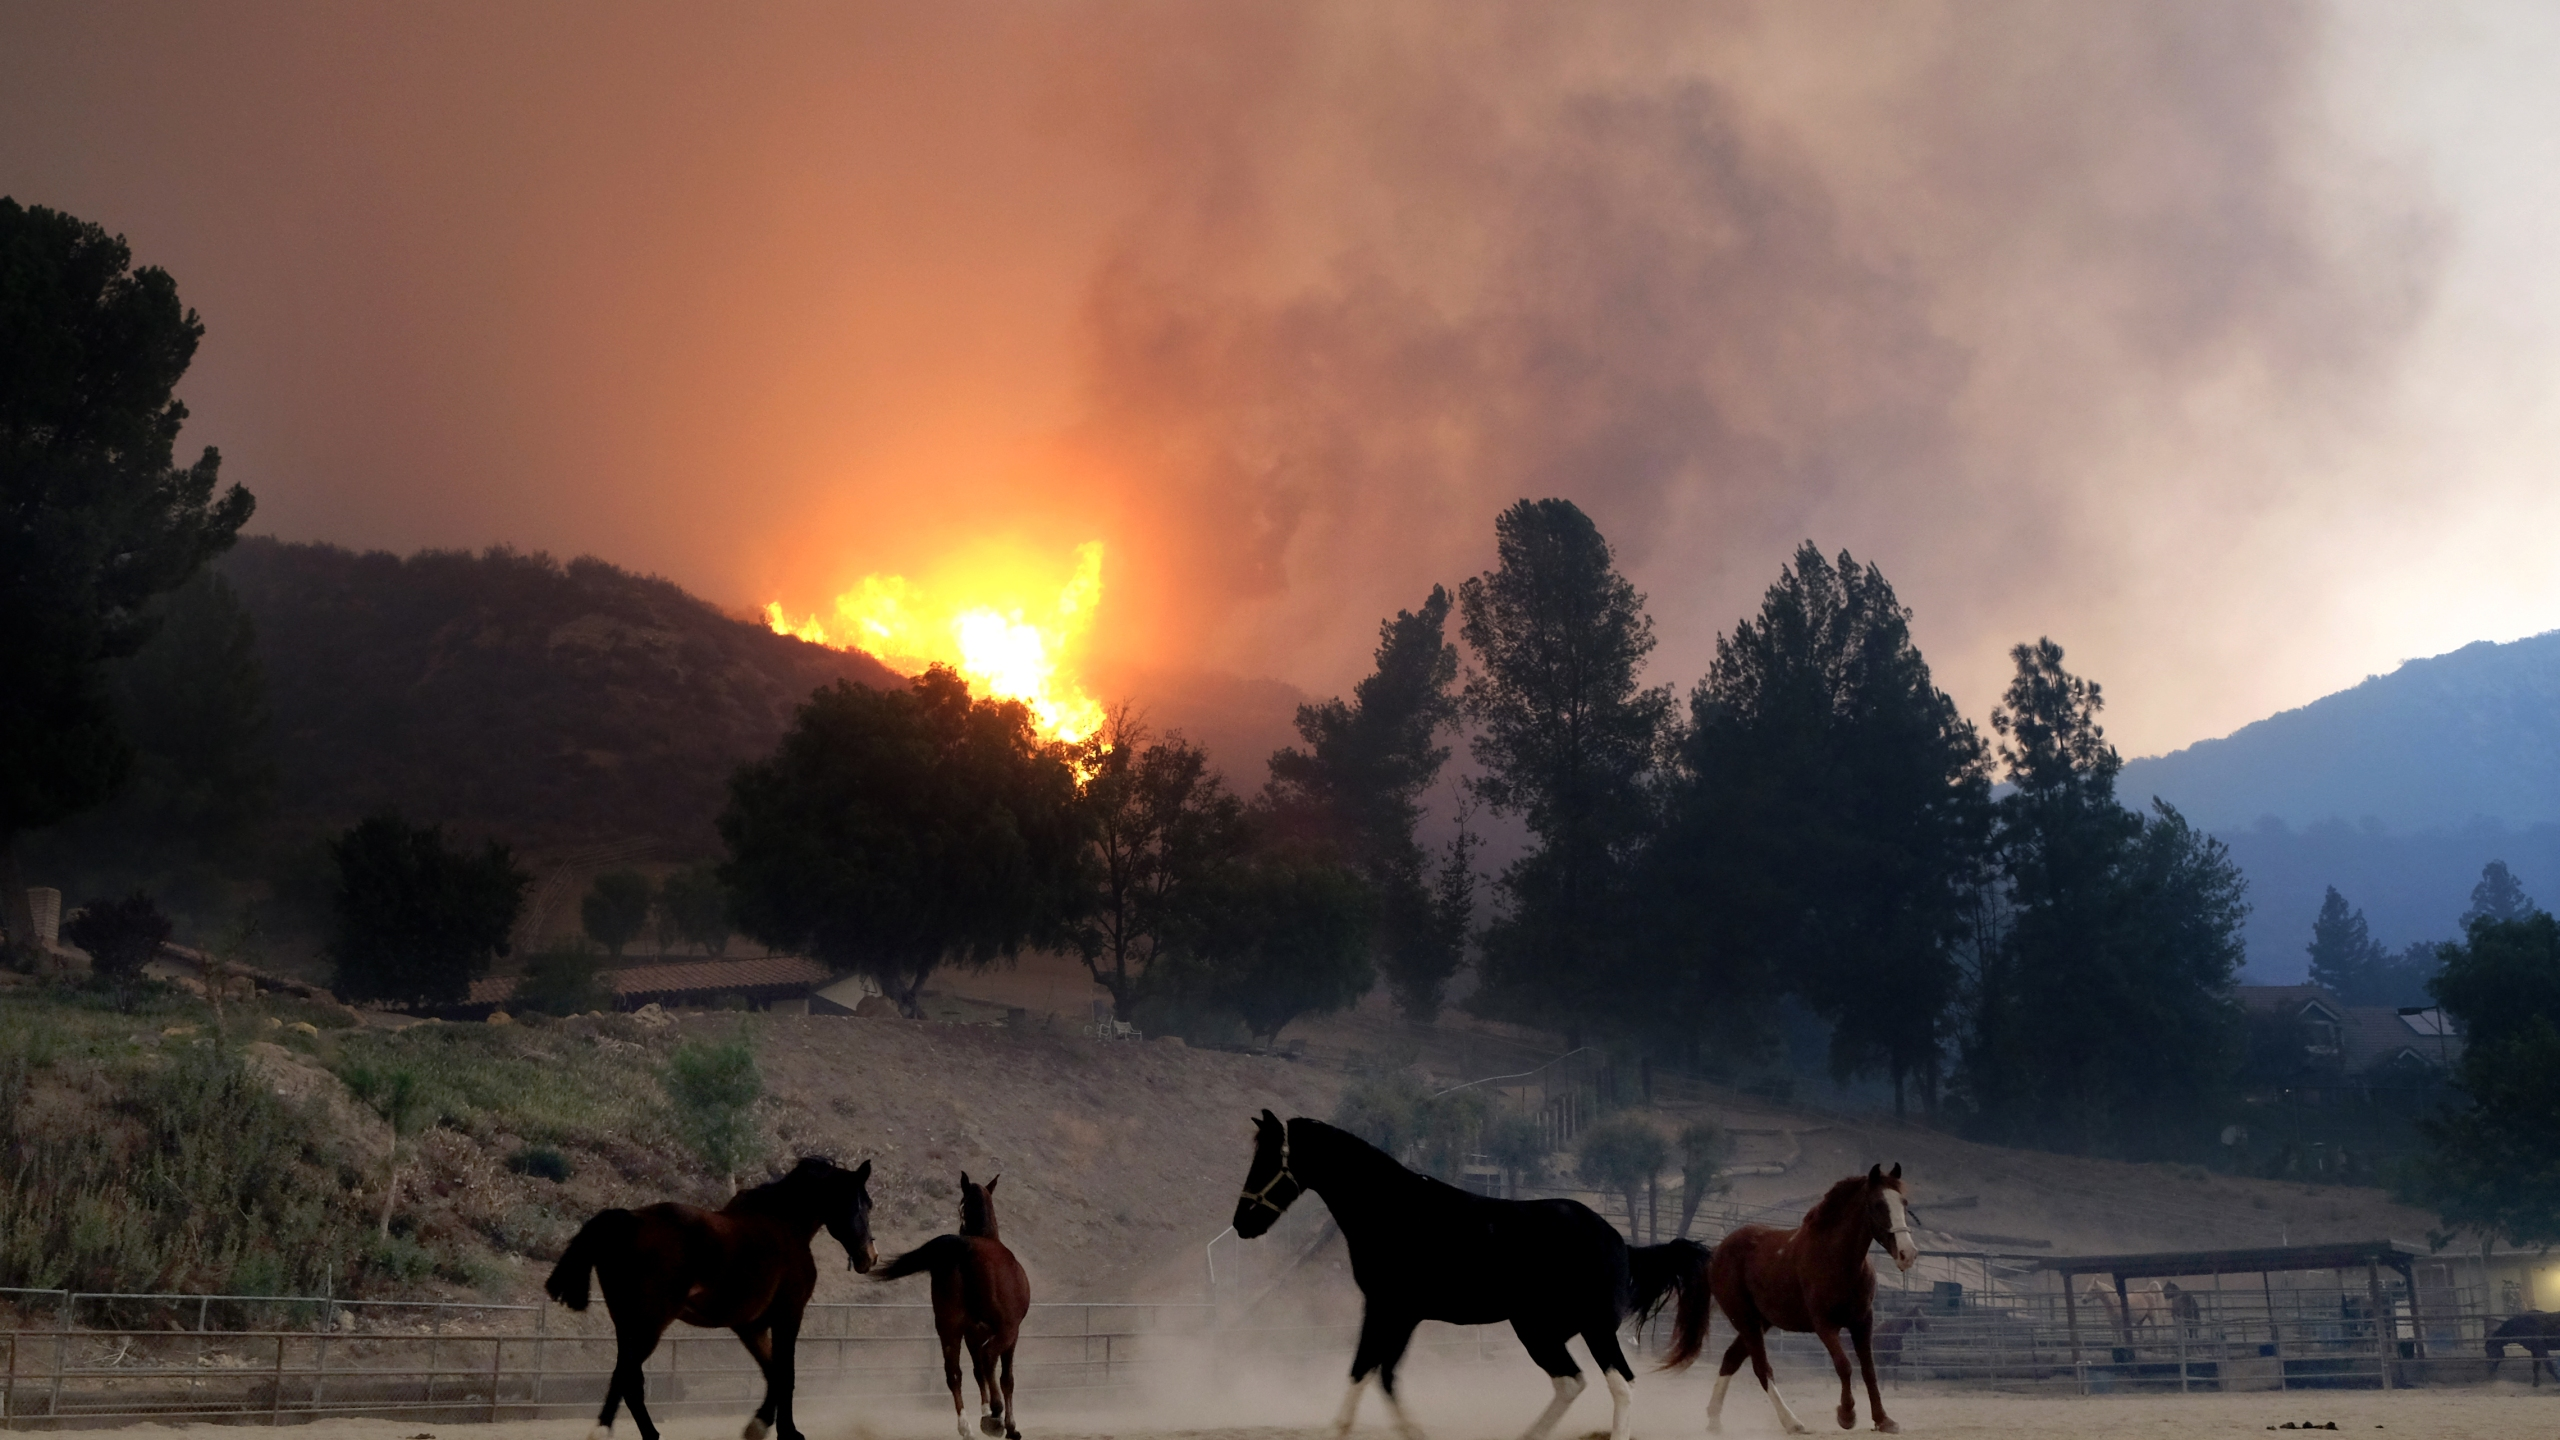 Horses are spooked as the Woolsey Fire moves through the property on Cornell Road near Paramount Ranch on November 9, 2018 inAgoura Hills, California. (Credit: Matthew Simmons/Getty Images)